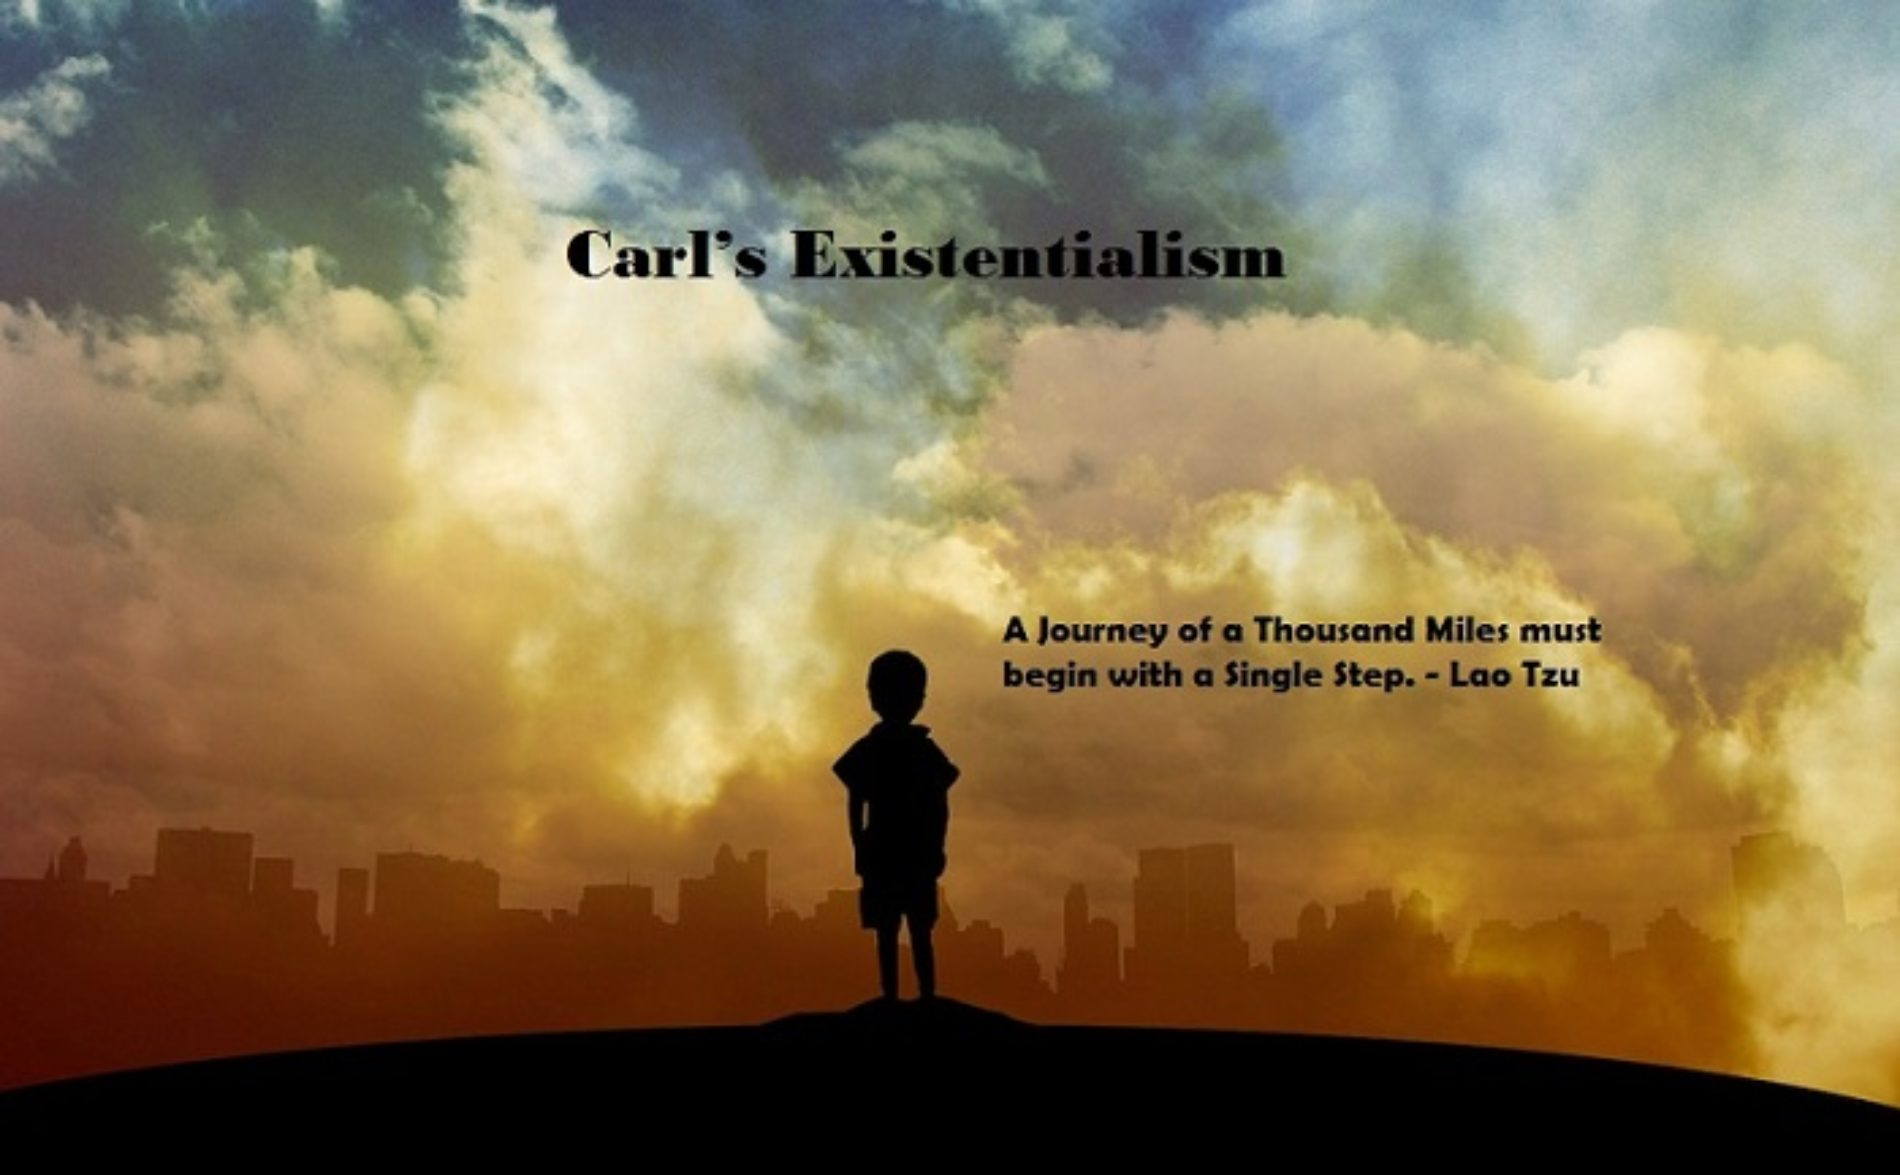 Carl's Existentialism III